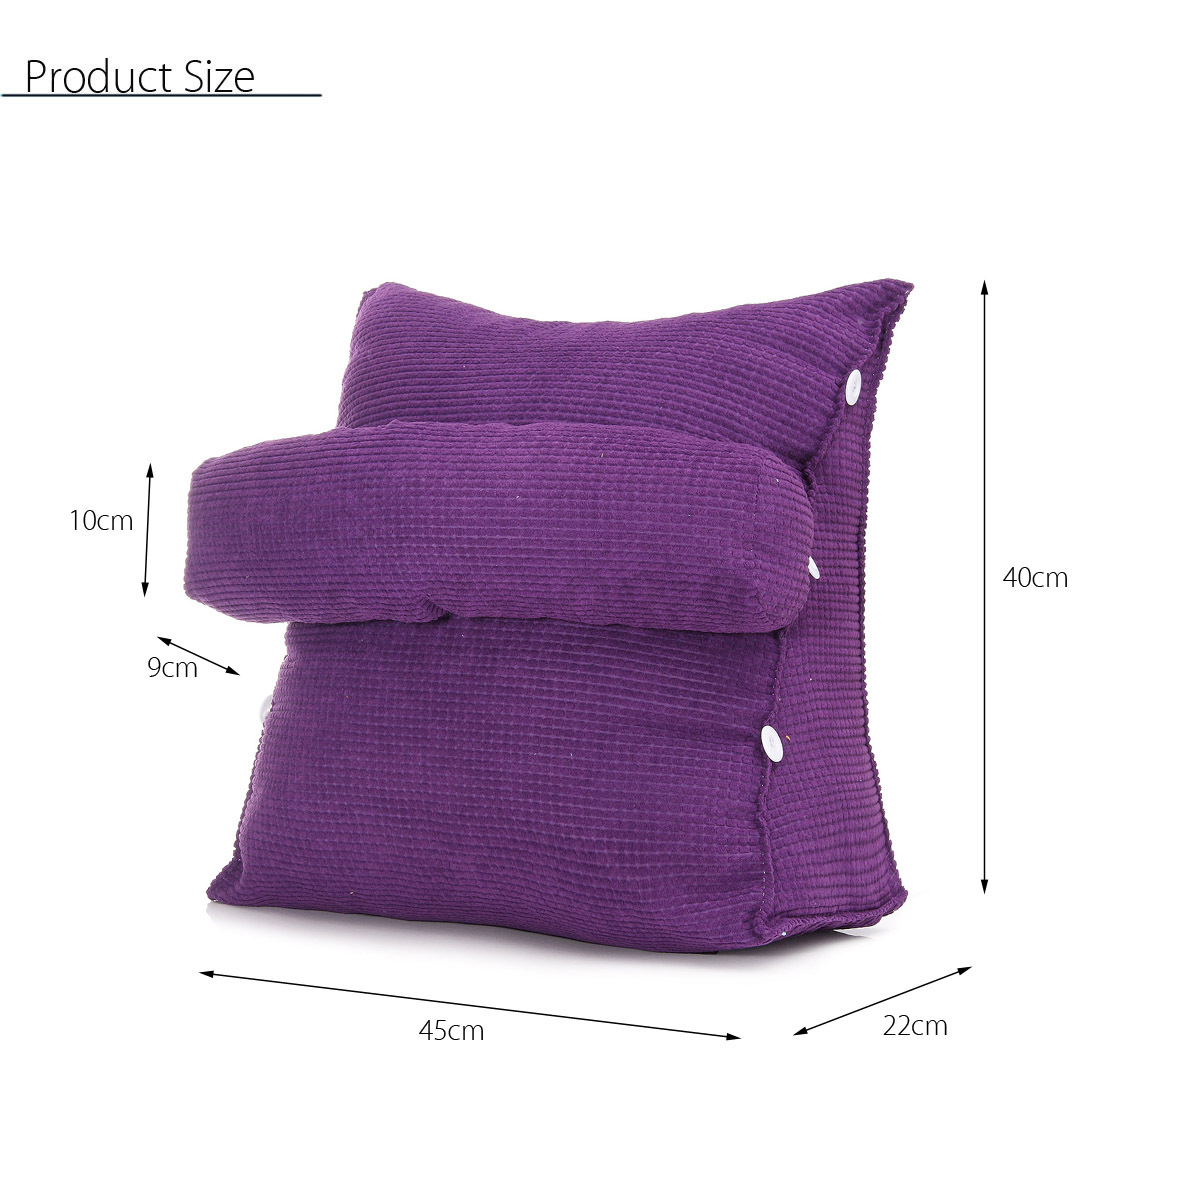 Adjustable Back Wedge Cushion Pillow Sofa Bed Office Chair